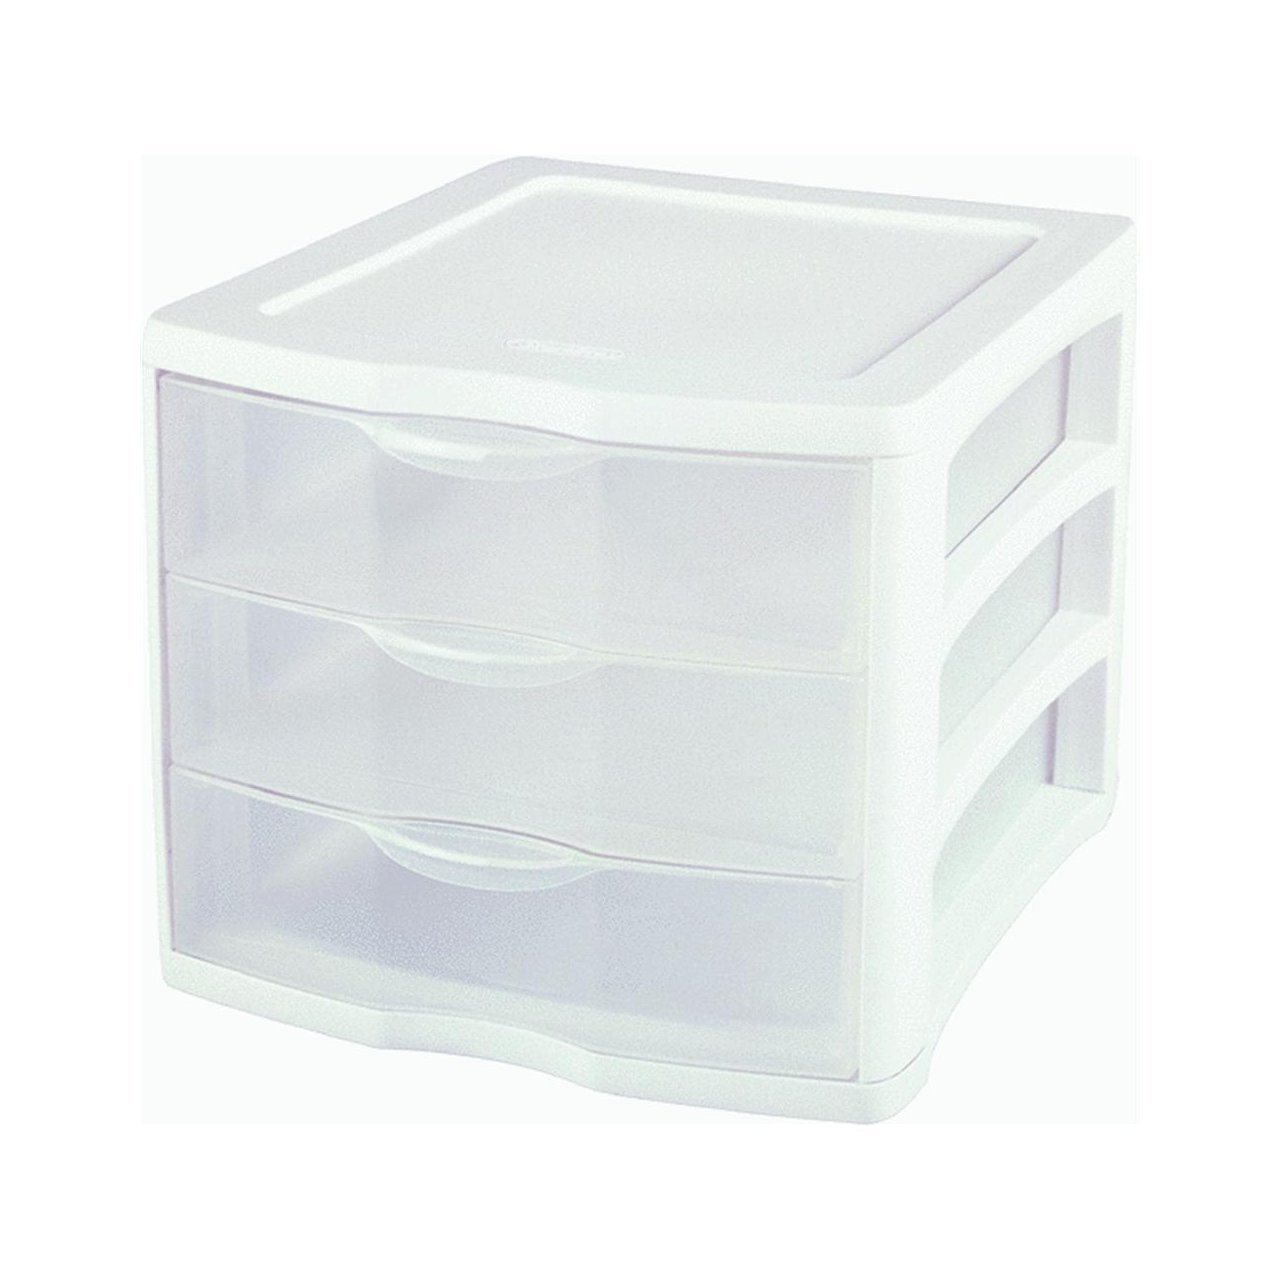 Sterilite 3-Drawer See-Through Organizer - Letter Size